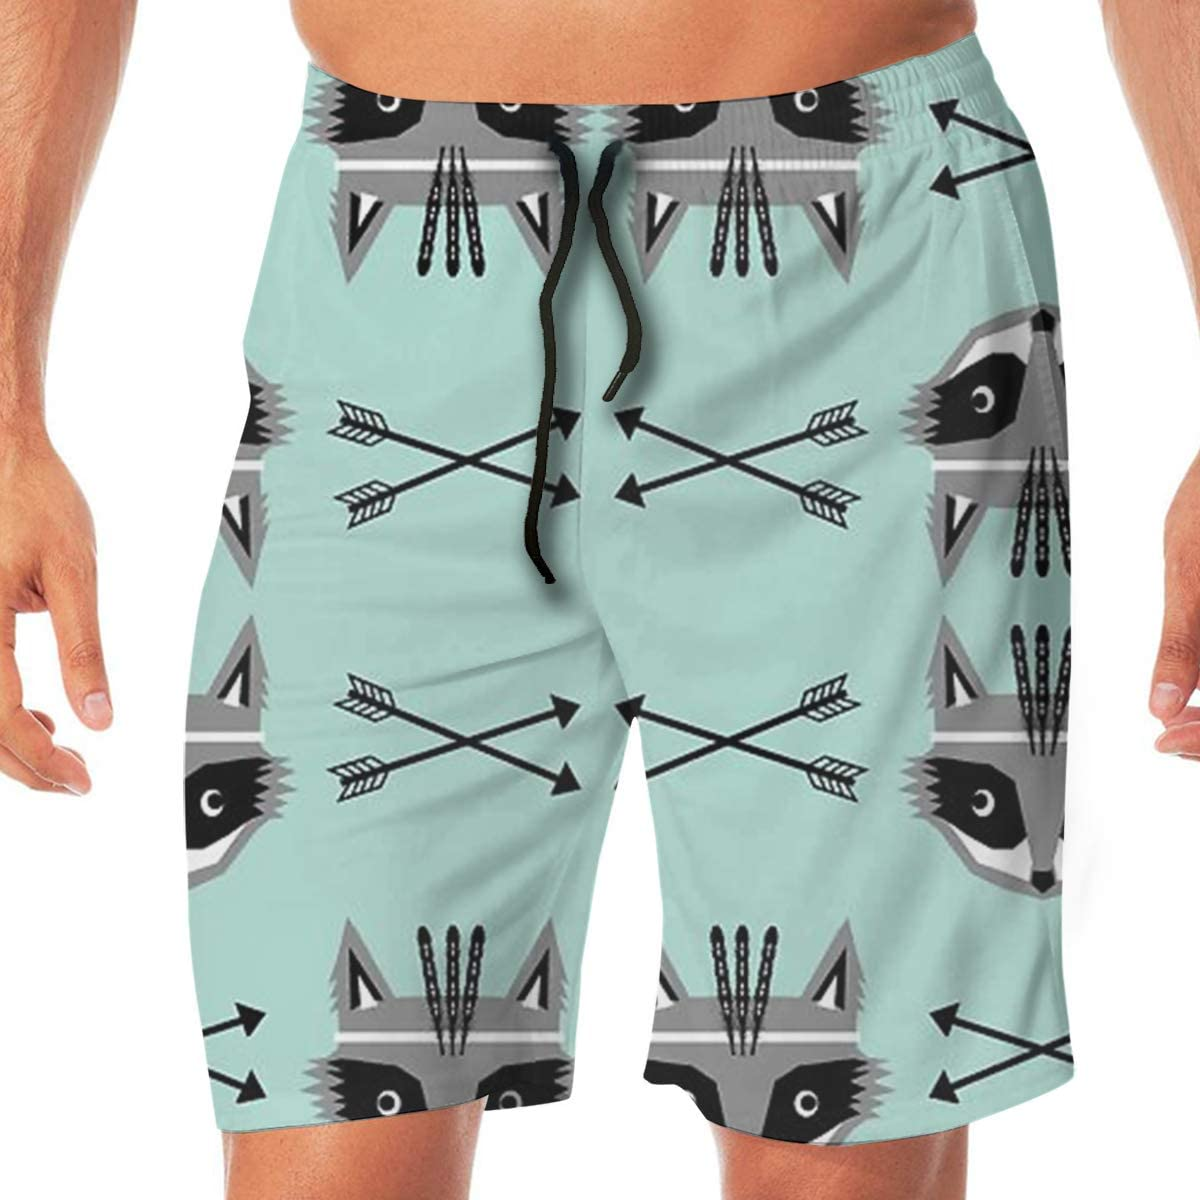 MaoYTUI Raccoon Arrows Southwest Mens Swim Trunks Boys Quick Dry Bathing Suits Drawstring Waist Beach Broad Shorts Swim Suit Beachwear with Mesh Lining